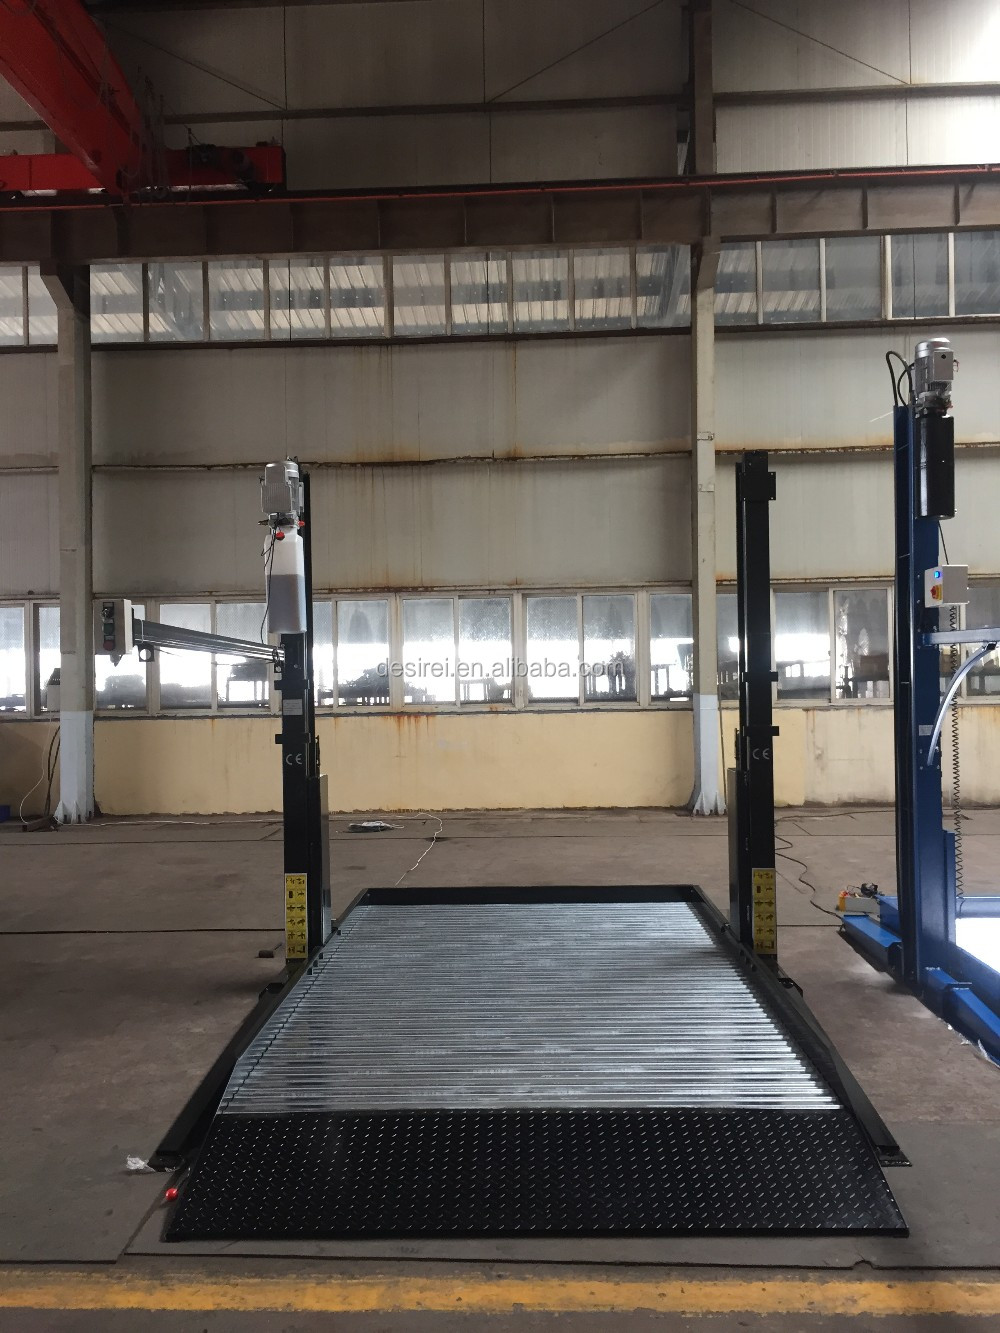 Garage Gym With Car Dtpp605 Desiree Hydraulic Automatic Small Car Parking Lift For Garage Buy Car Lifts For Home Garages Hydraulic Lift For Car Car Lift For Basement